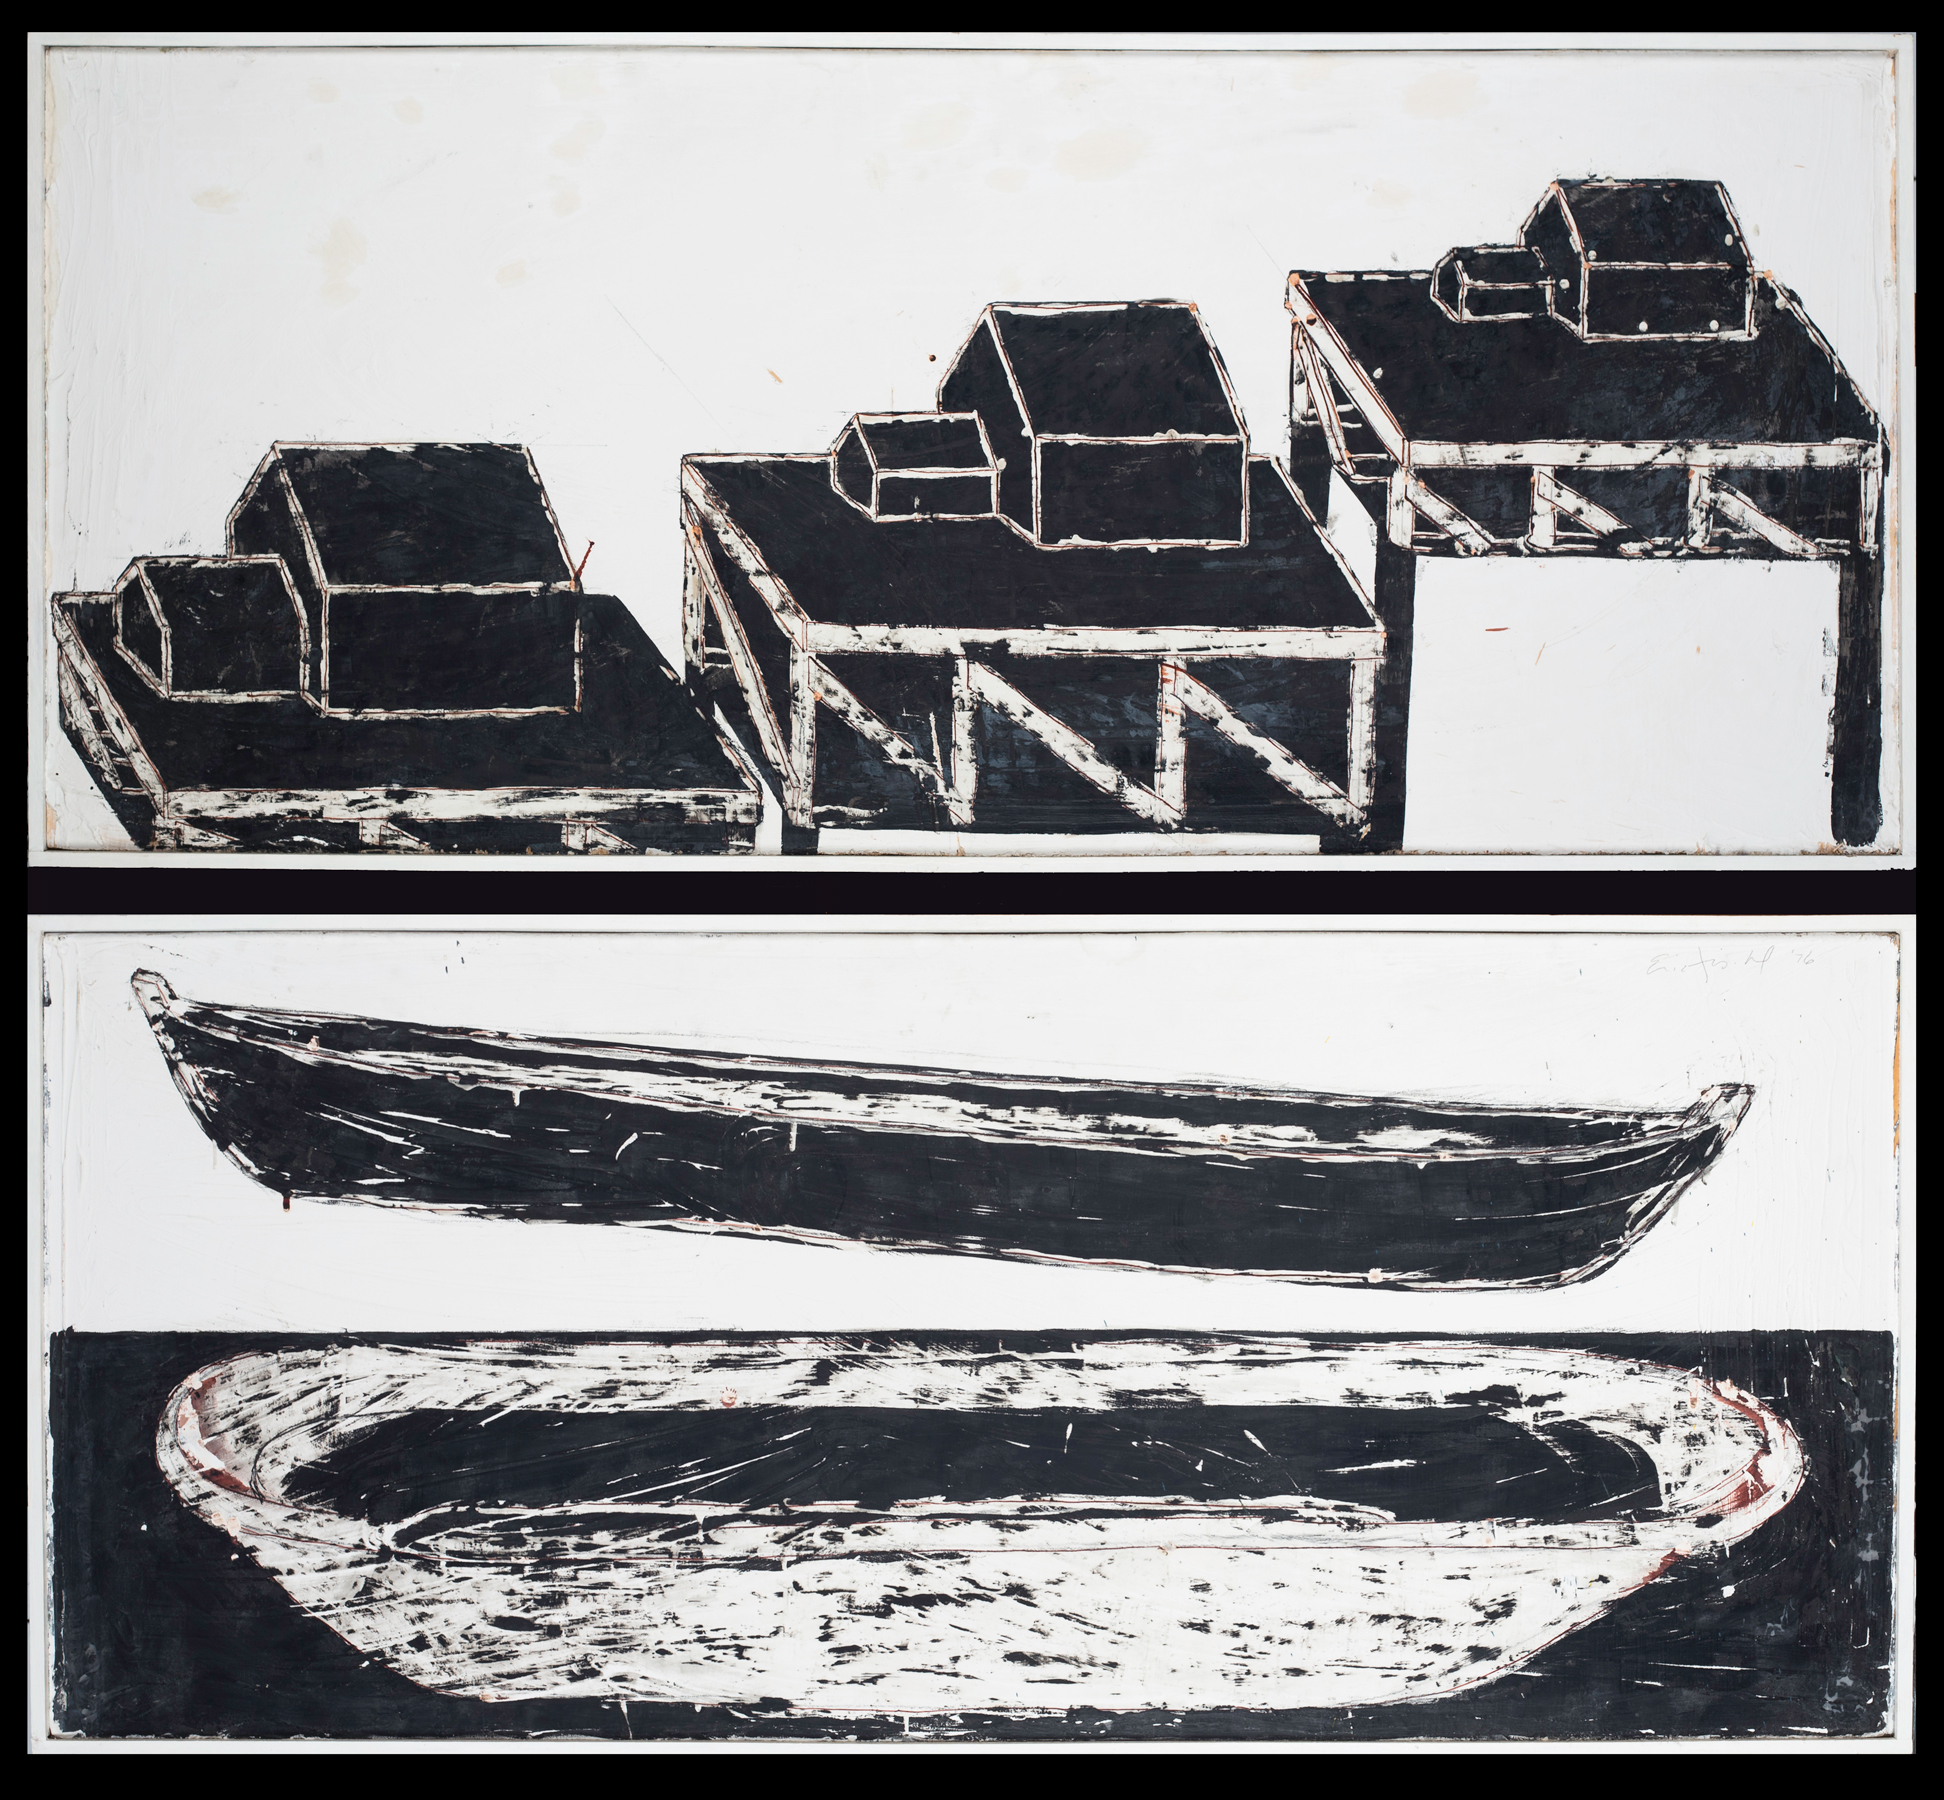 Study for Boat and Tub. Maquette for Mural (Two sided), 1976. oil and beeswax on wood, 24 x 48 in.